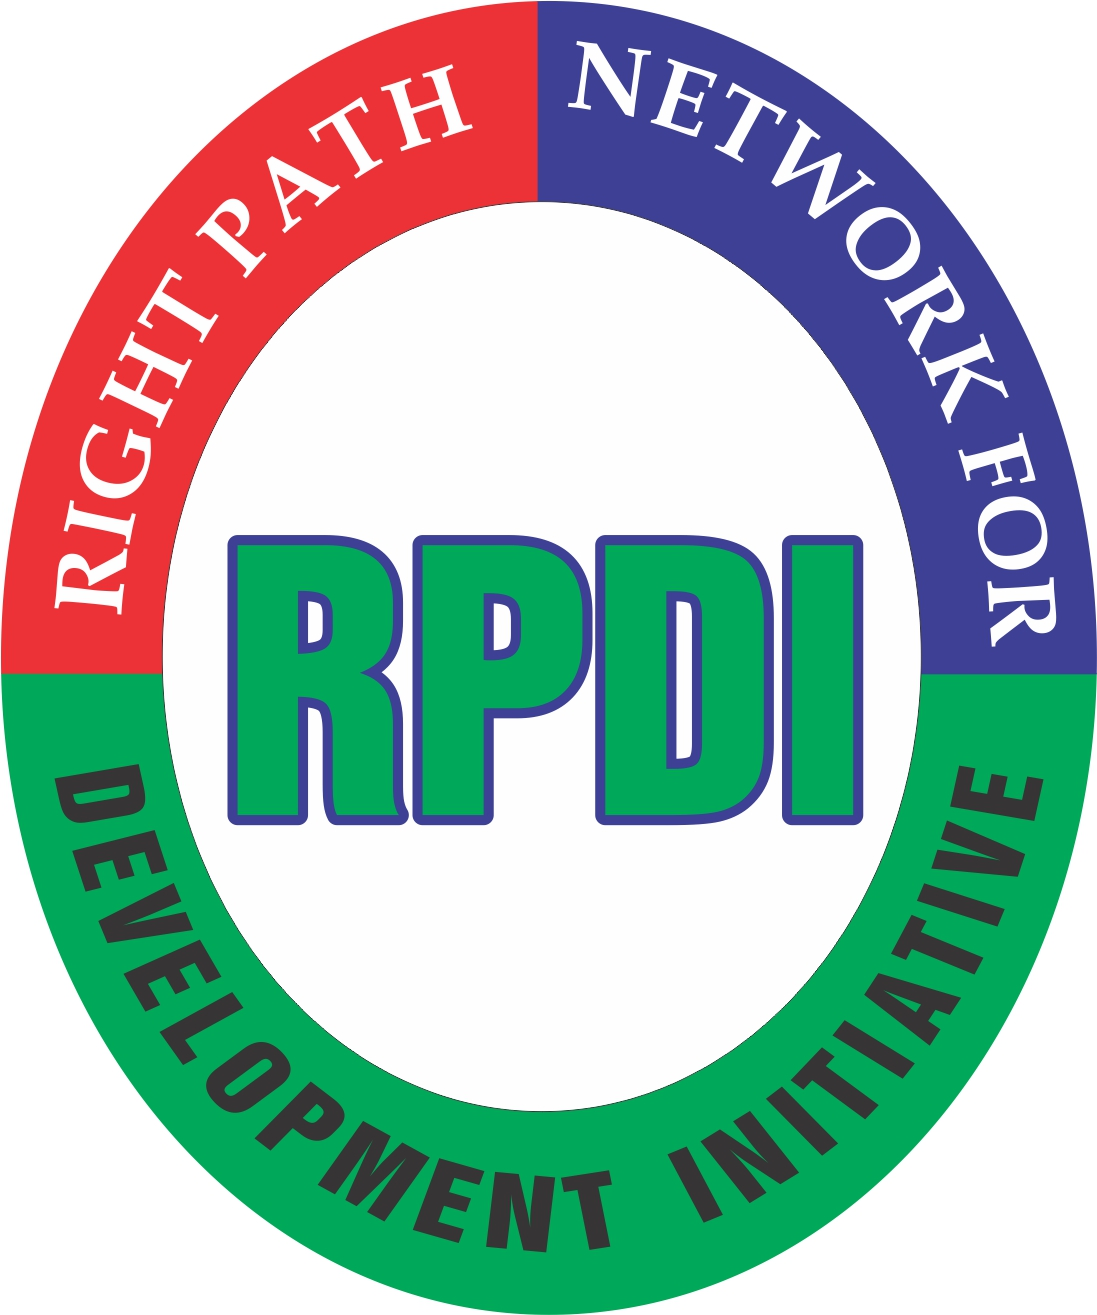 Right Path for Development Initiative (RPDI)